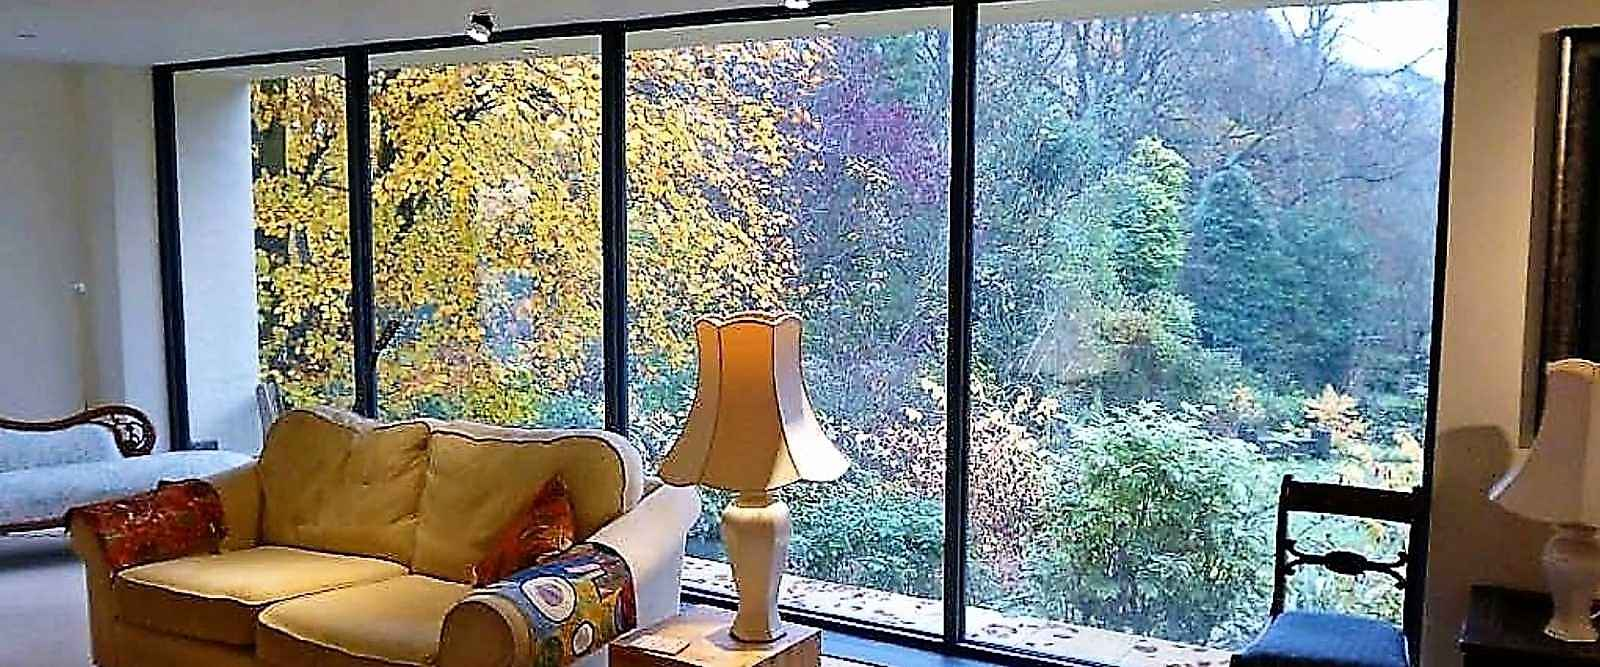 photo systems engineered c t w gallery curtain glazing hybrid wall